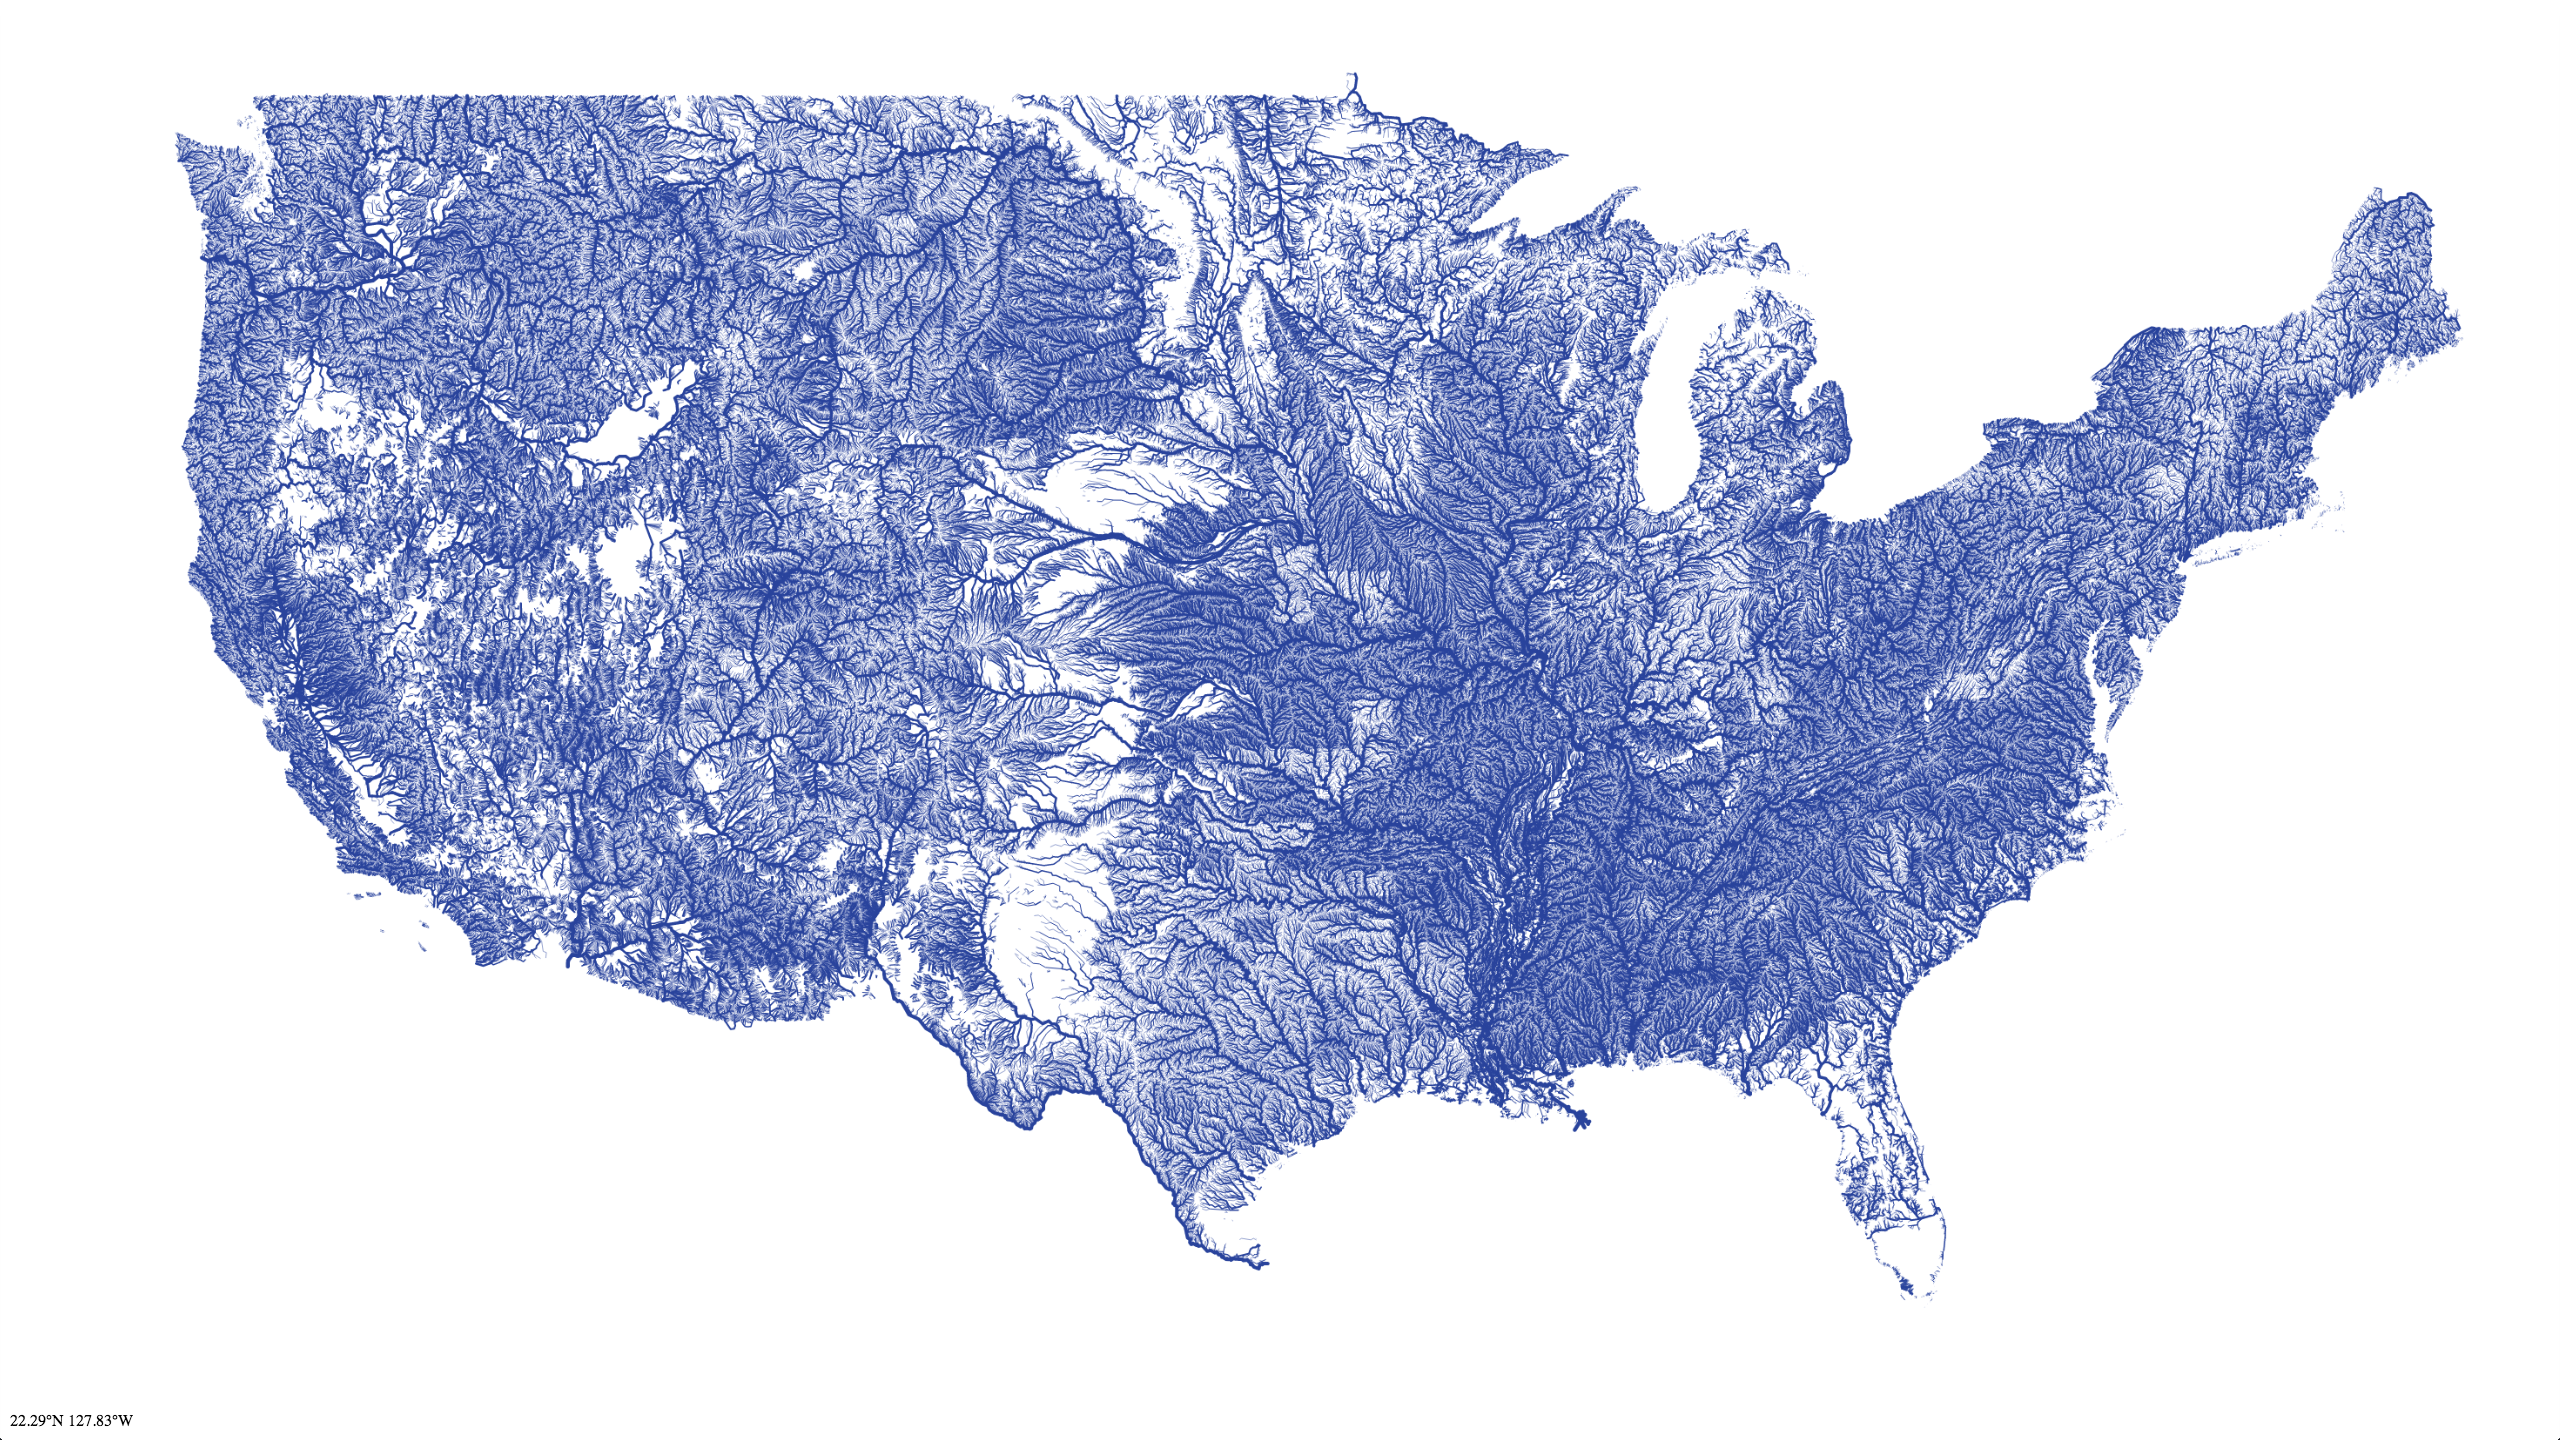 Map of Rivers in the Contiguous United